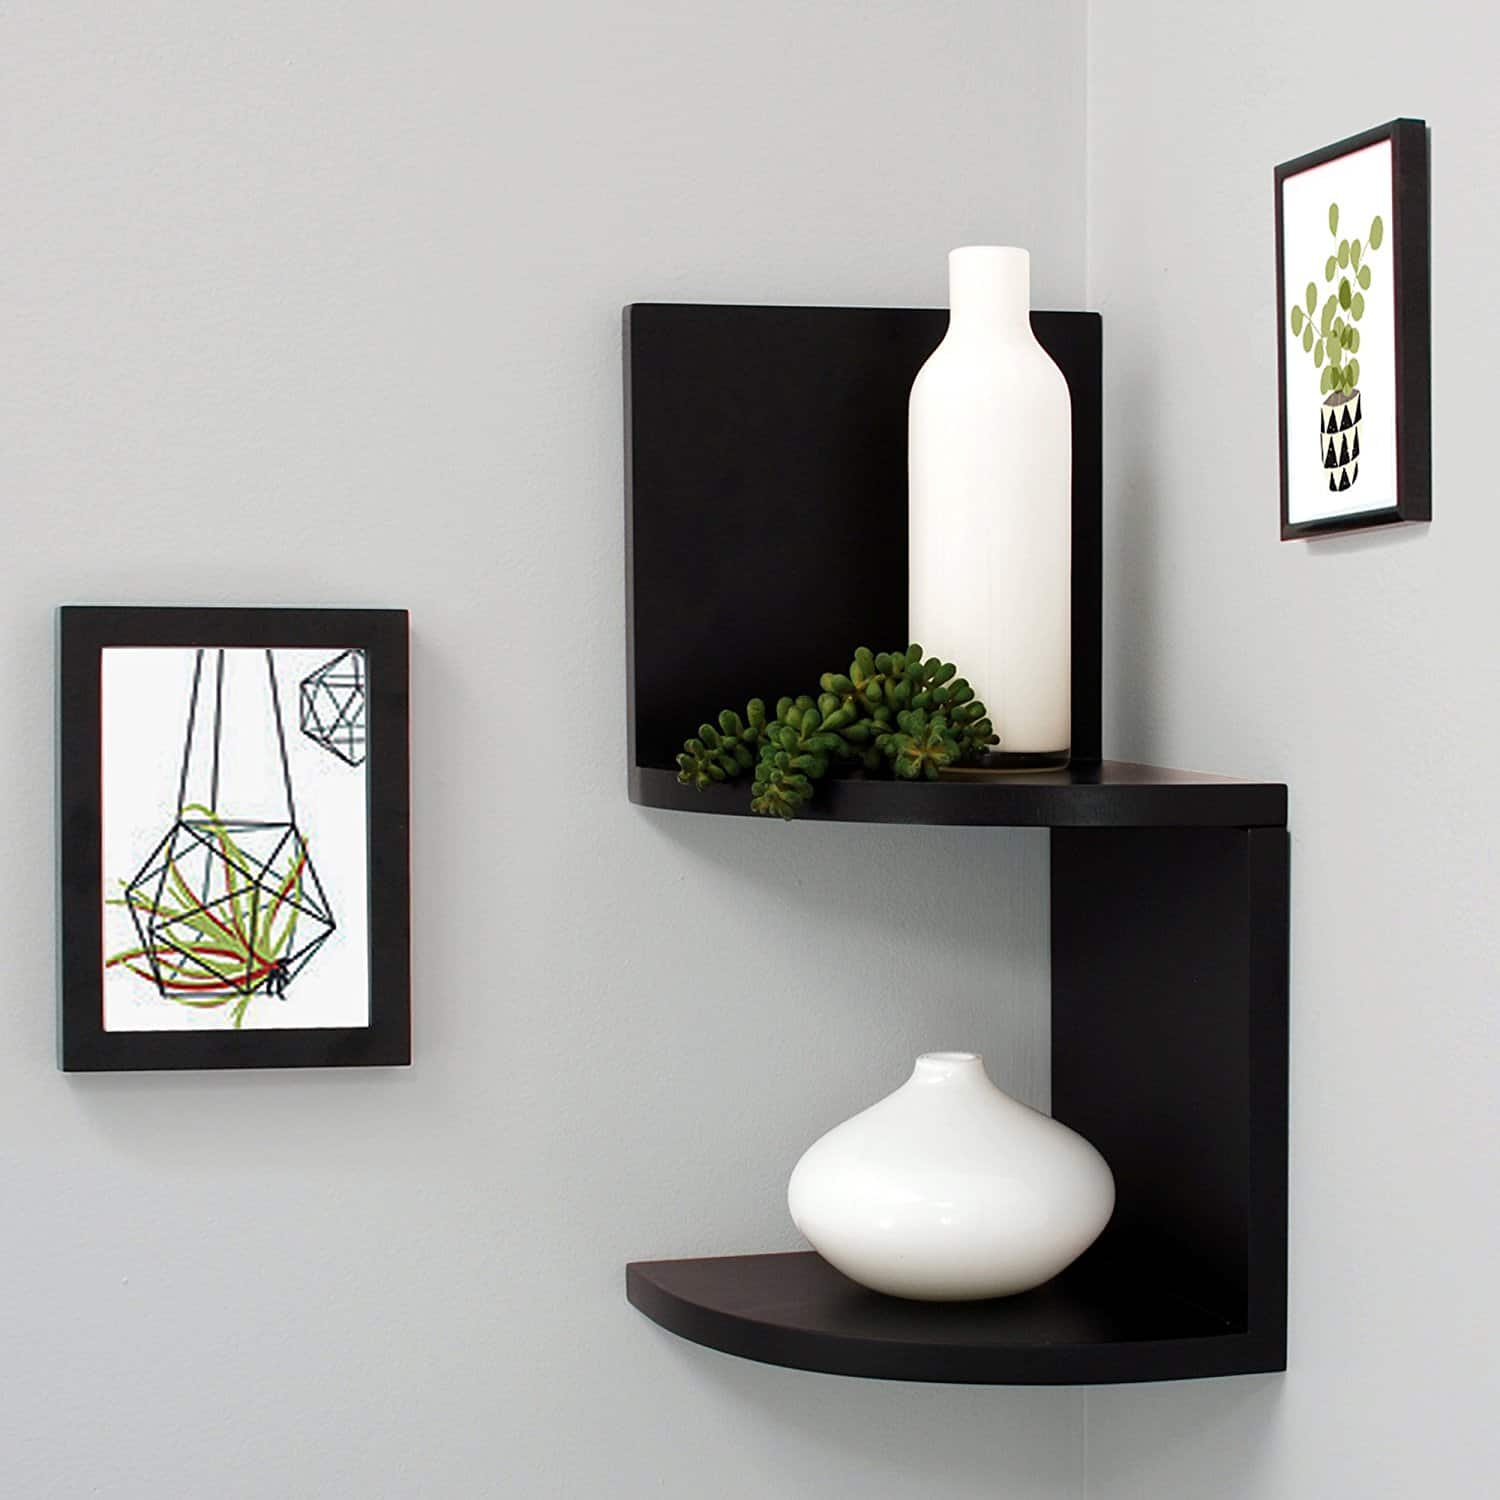 Kiera Grace Priva 2-Tier Wall Mount Corner Shelves (Black) $5.50 + Free Store Pickup